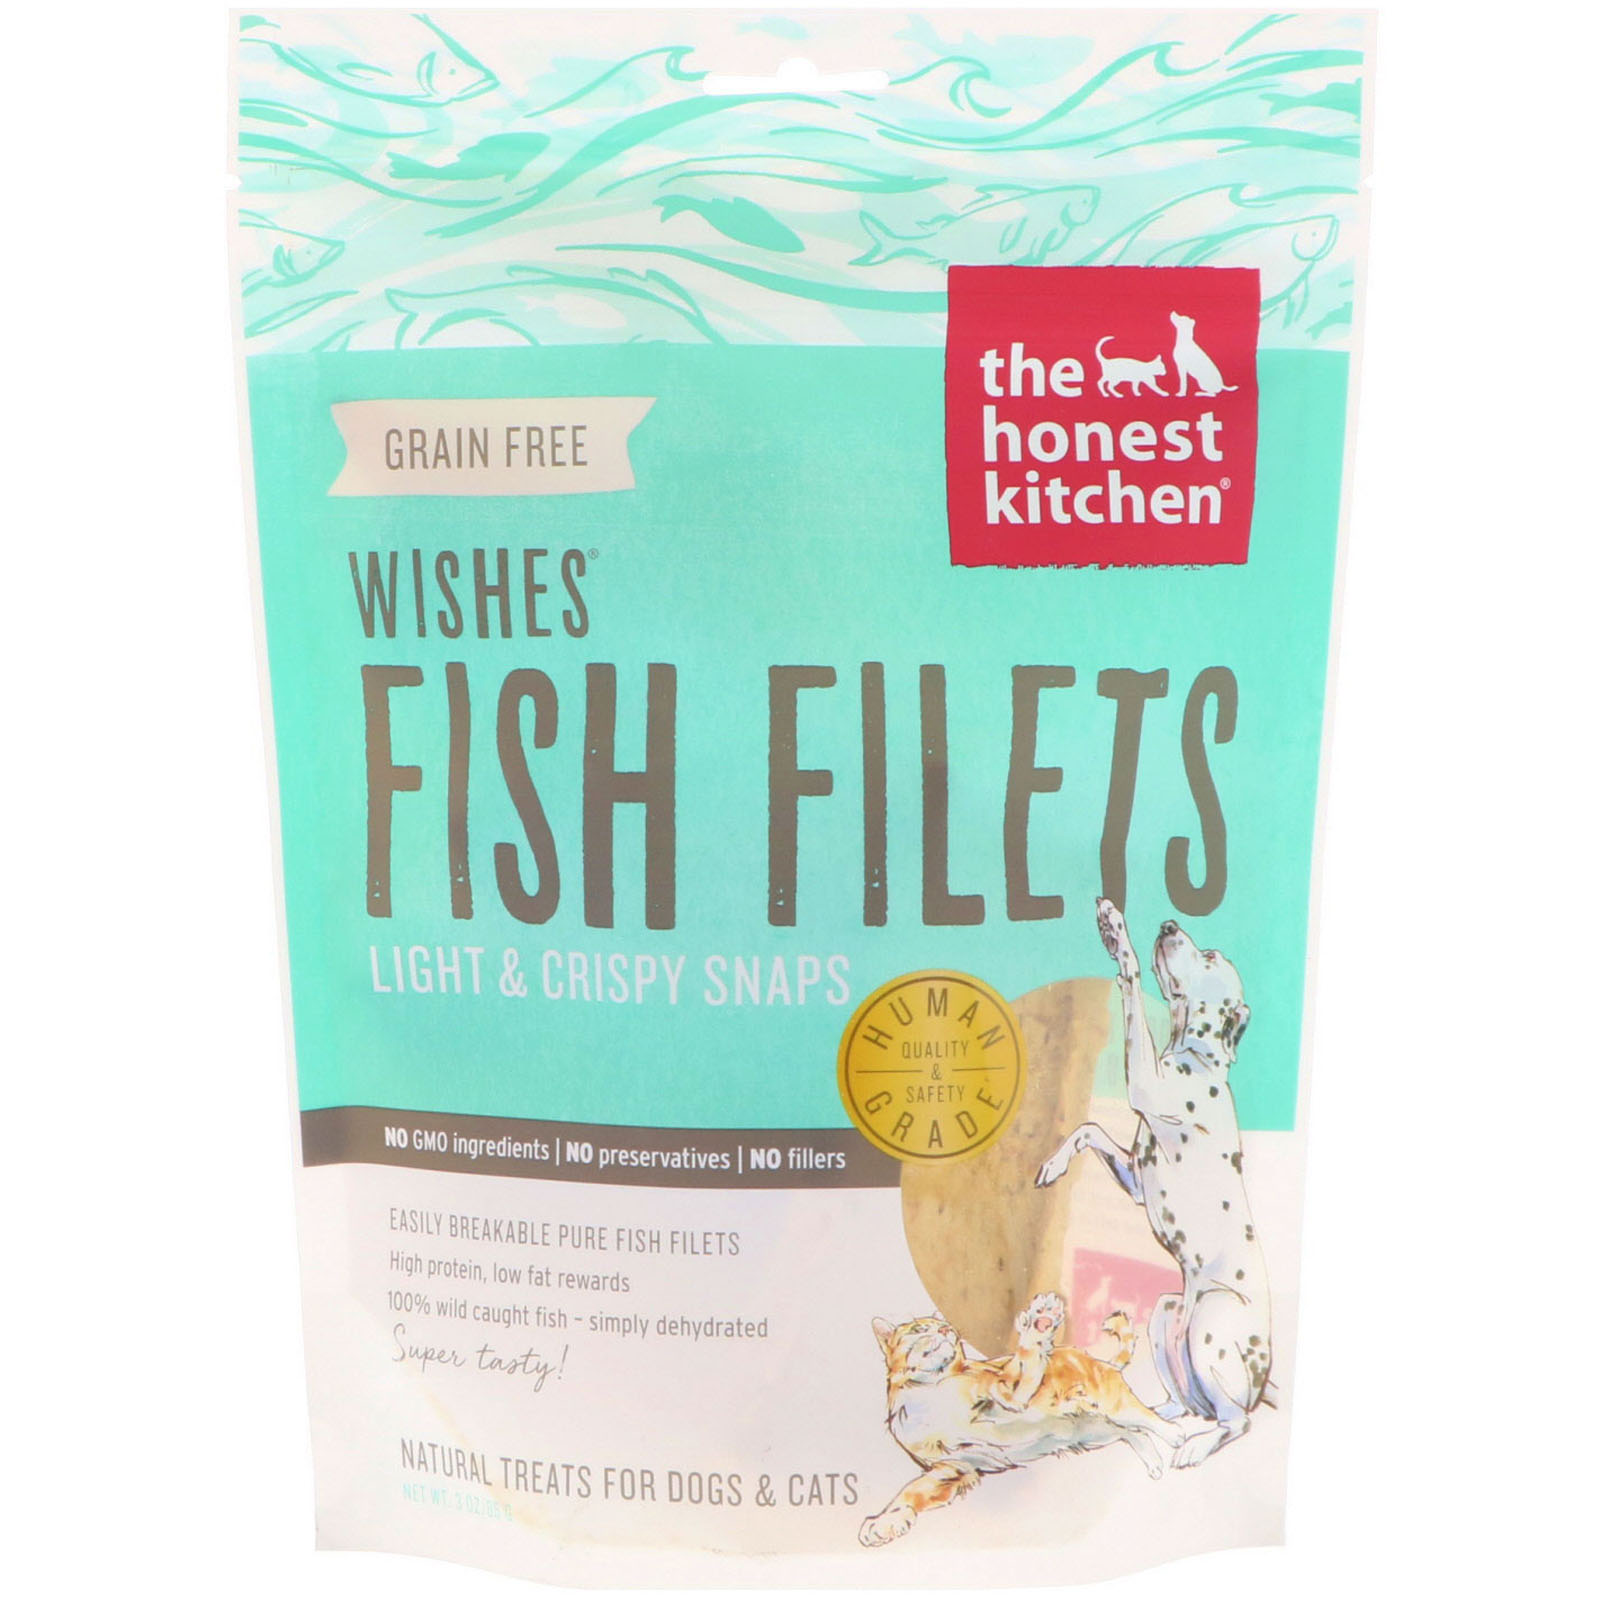 The Honest Kitchen Wishes Fish Filets Light Crispy Snaps For Dogs And Cats 3 Oz 85 G